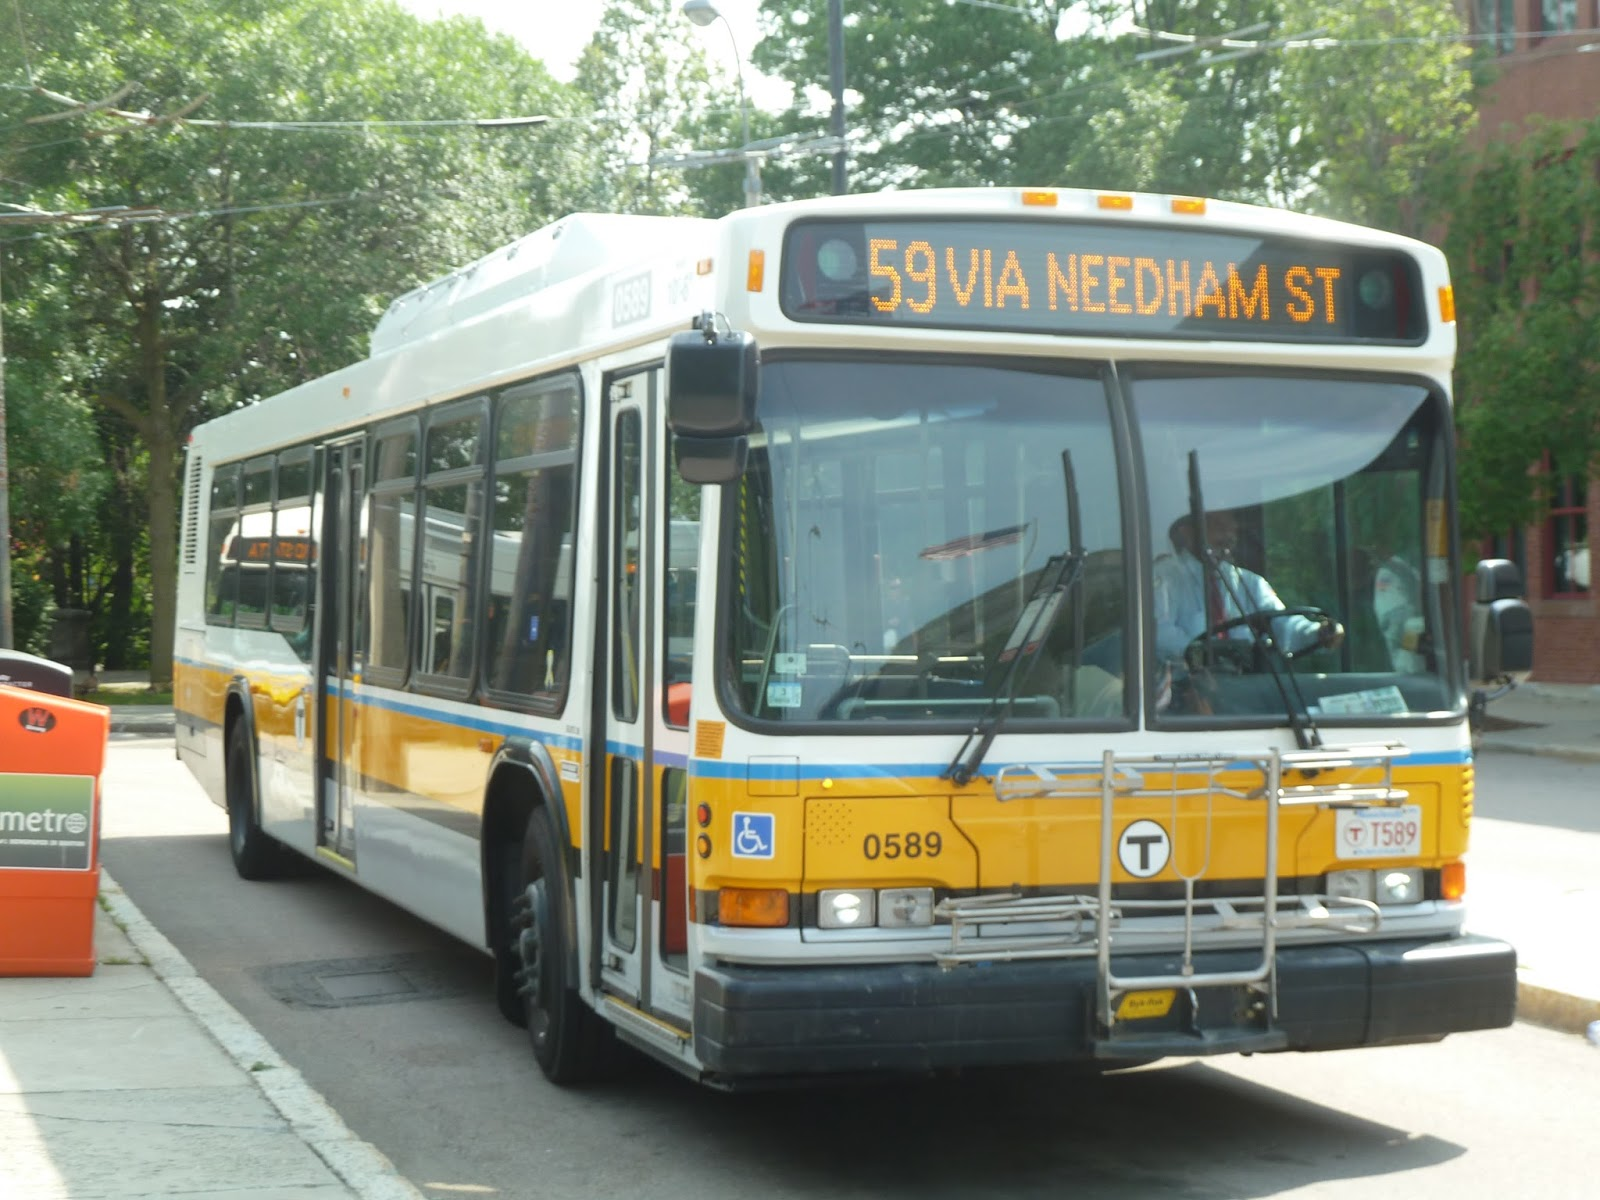 miles on the mbta: 59 (needham junction - watertown square via